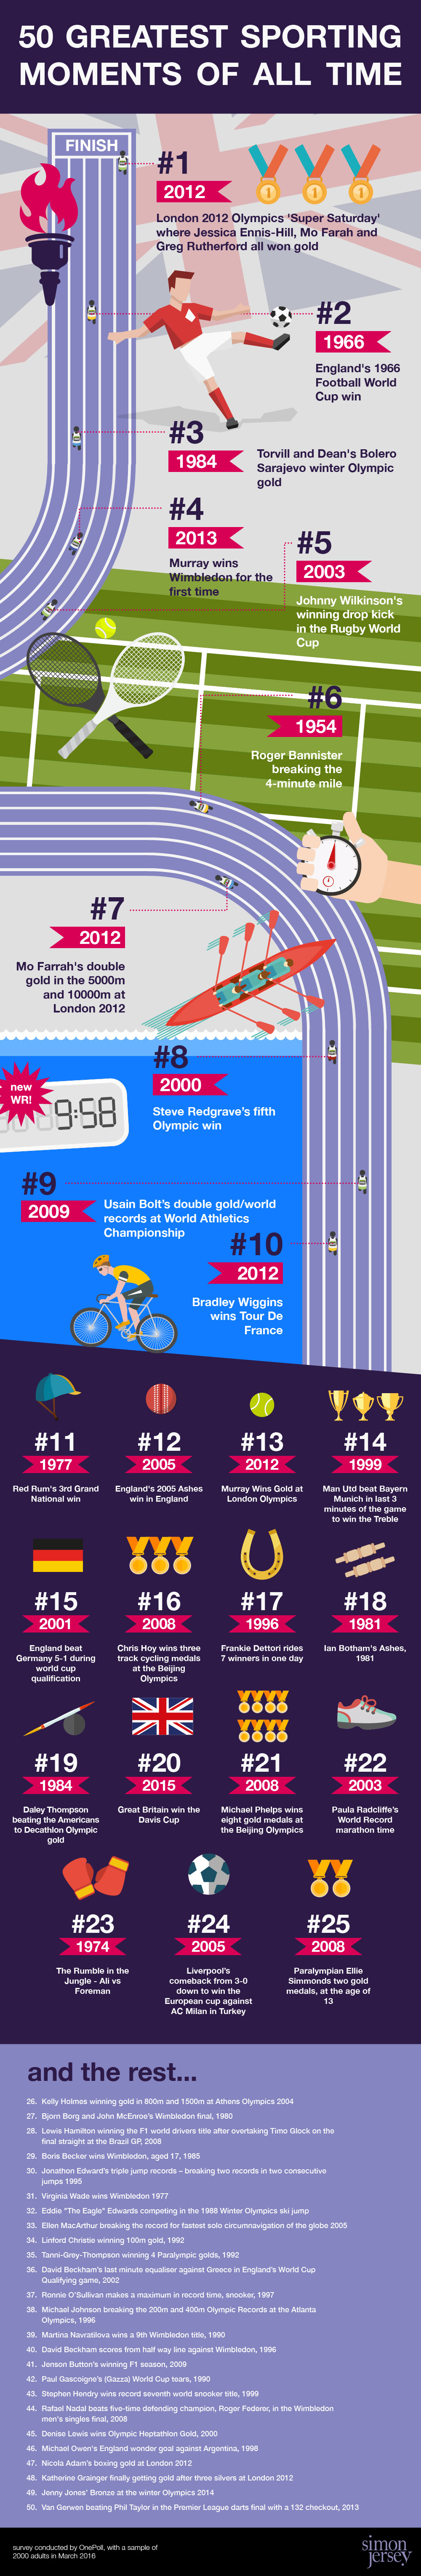 50 greatest sporting moments of all time infographic